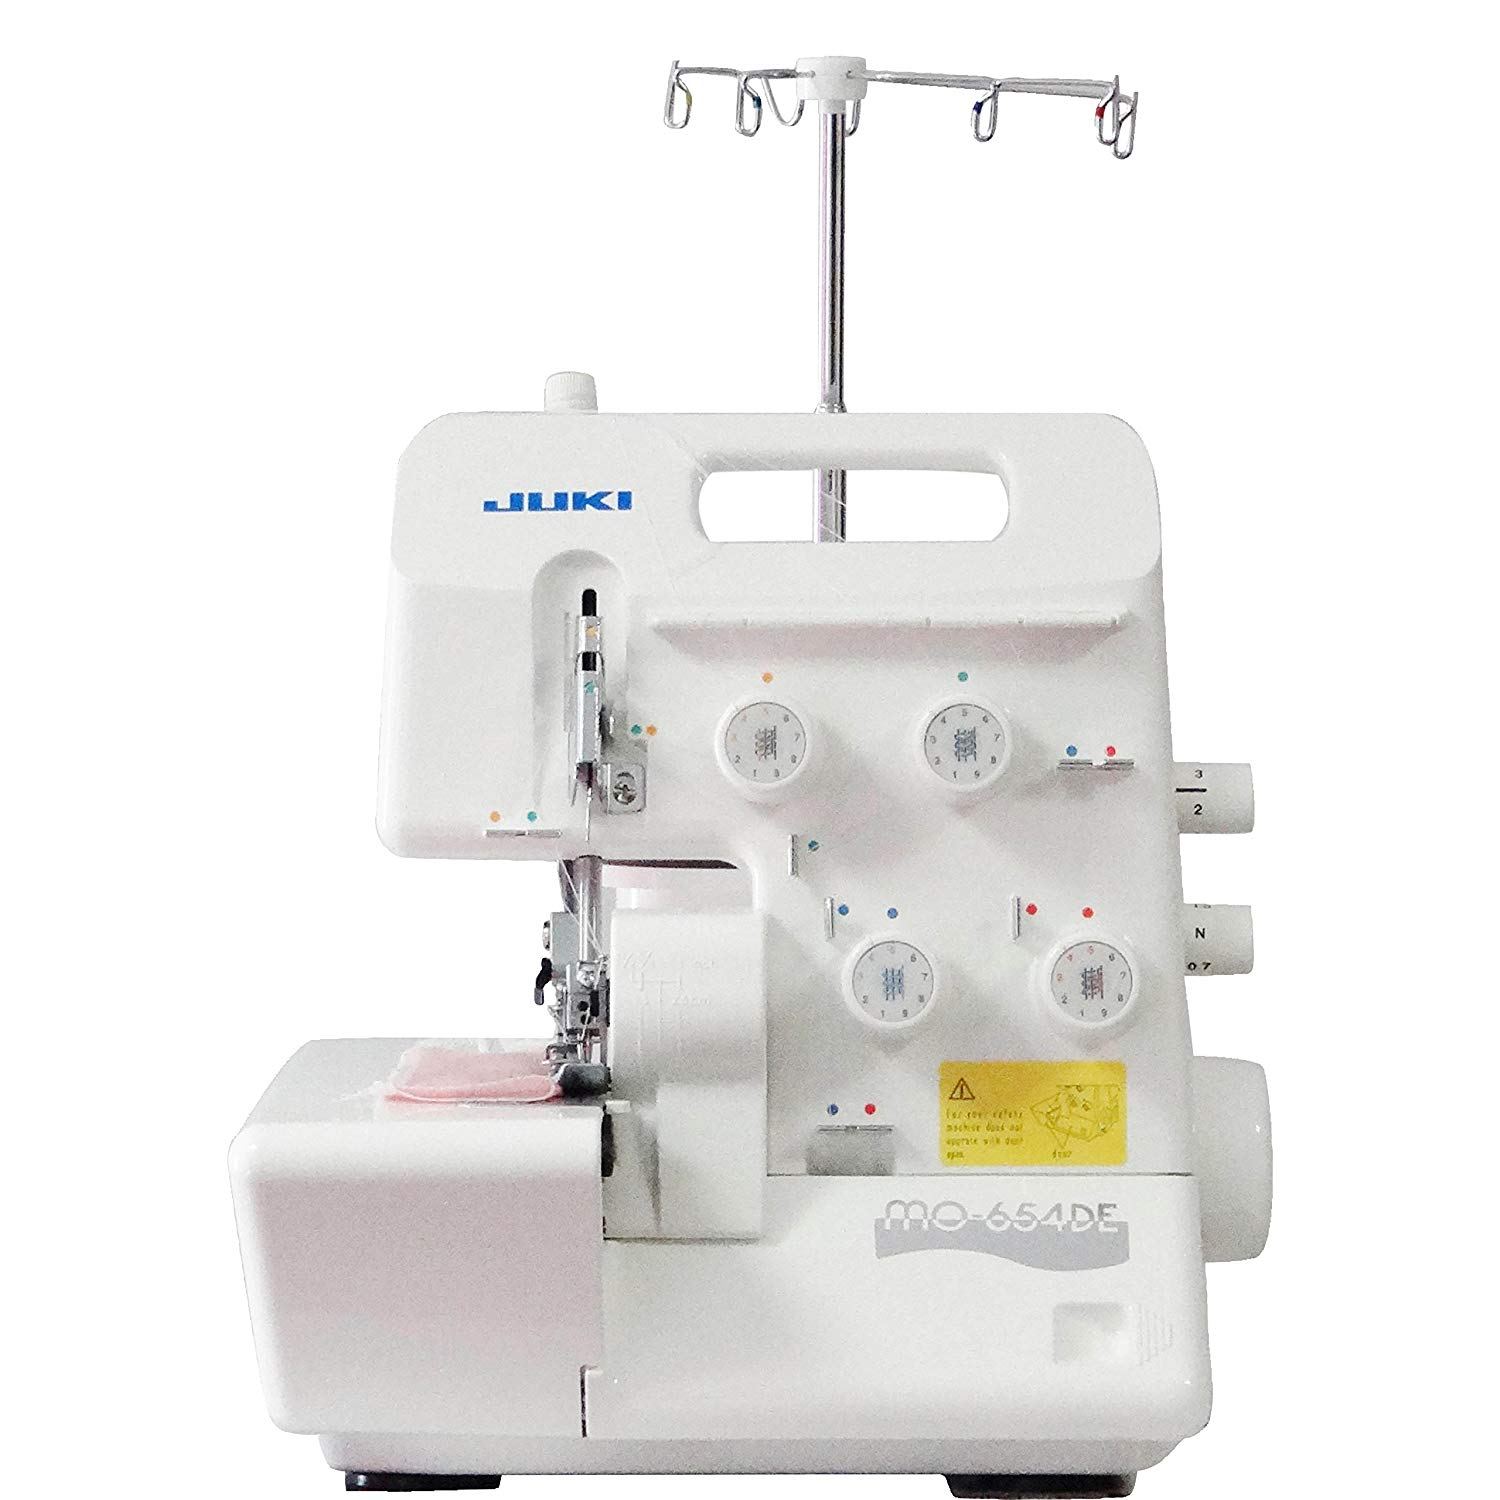 The Best Serger In The Market 9